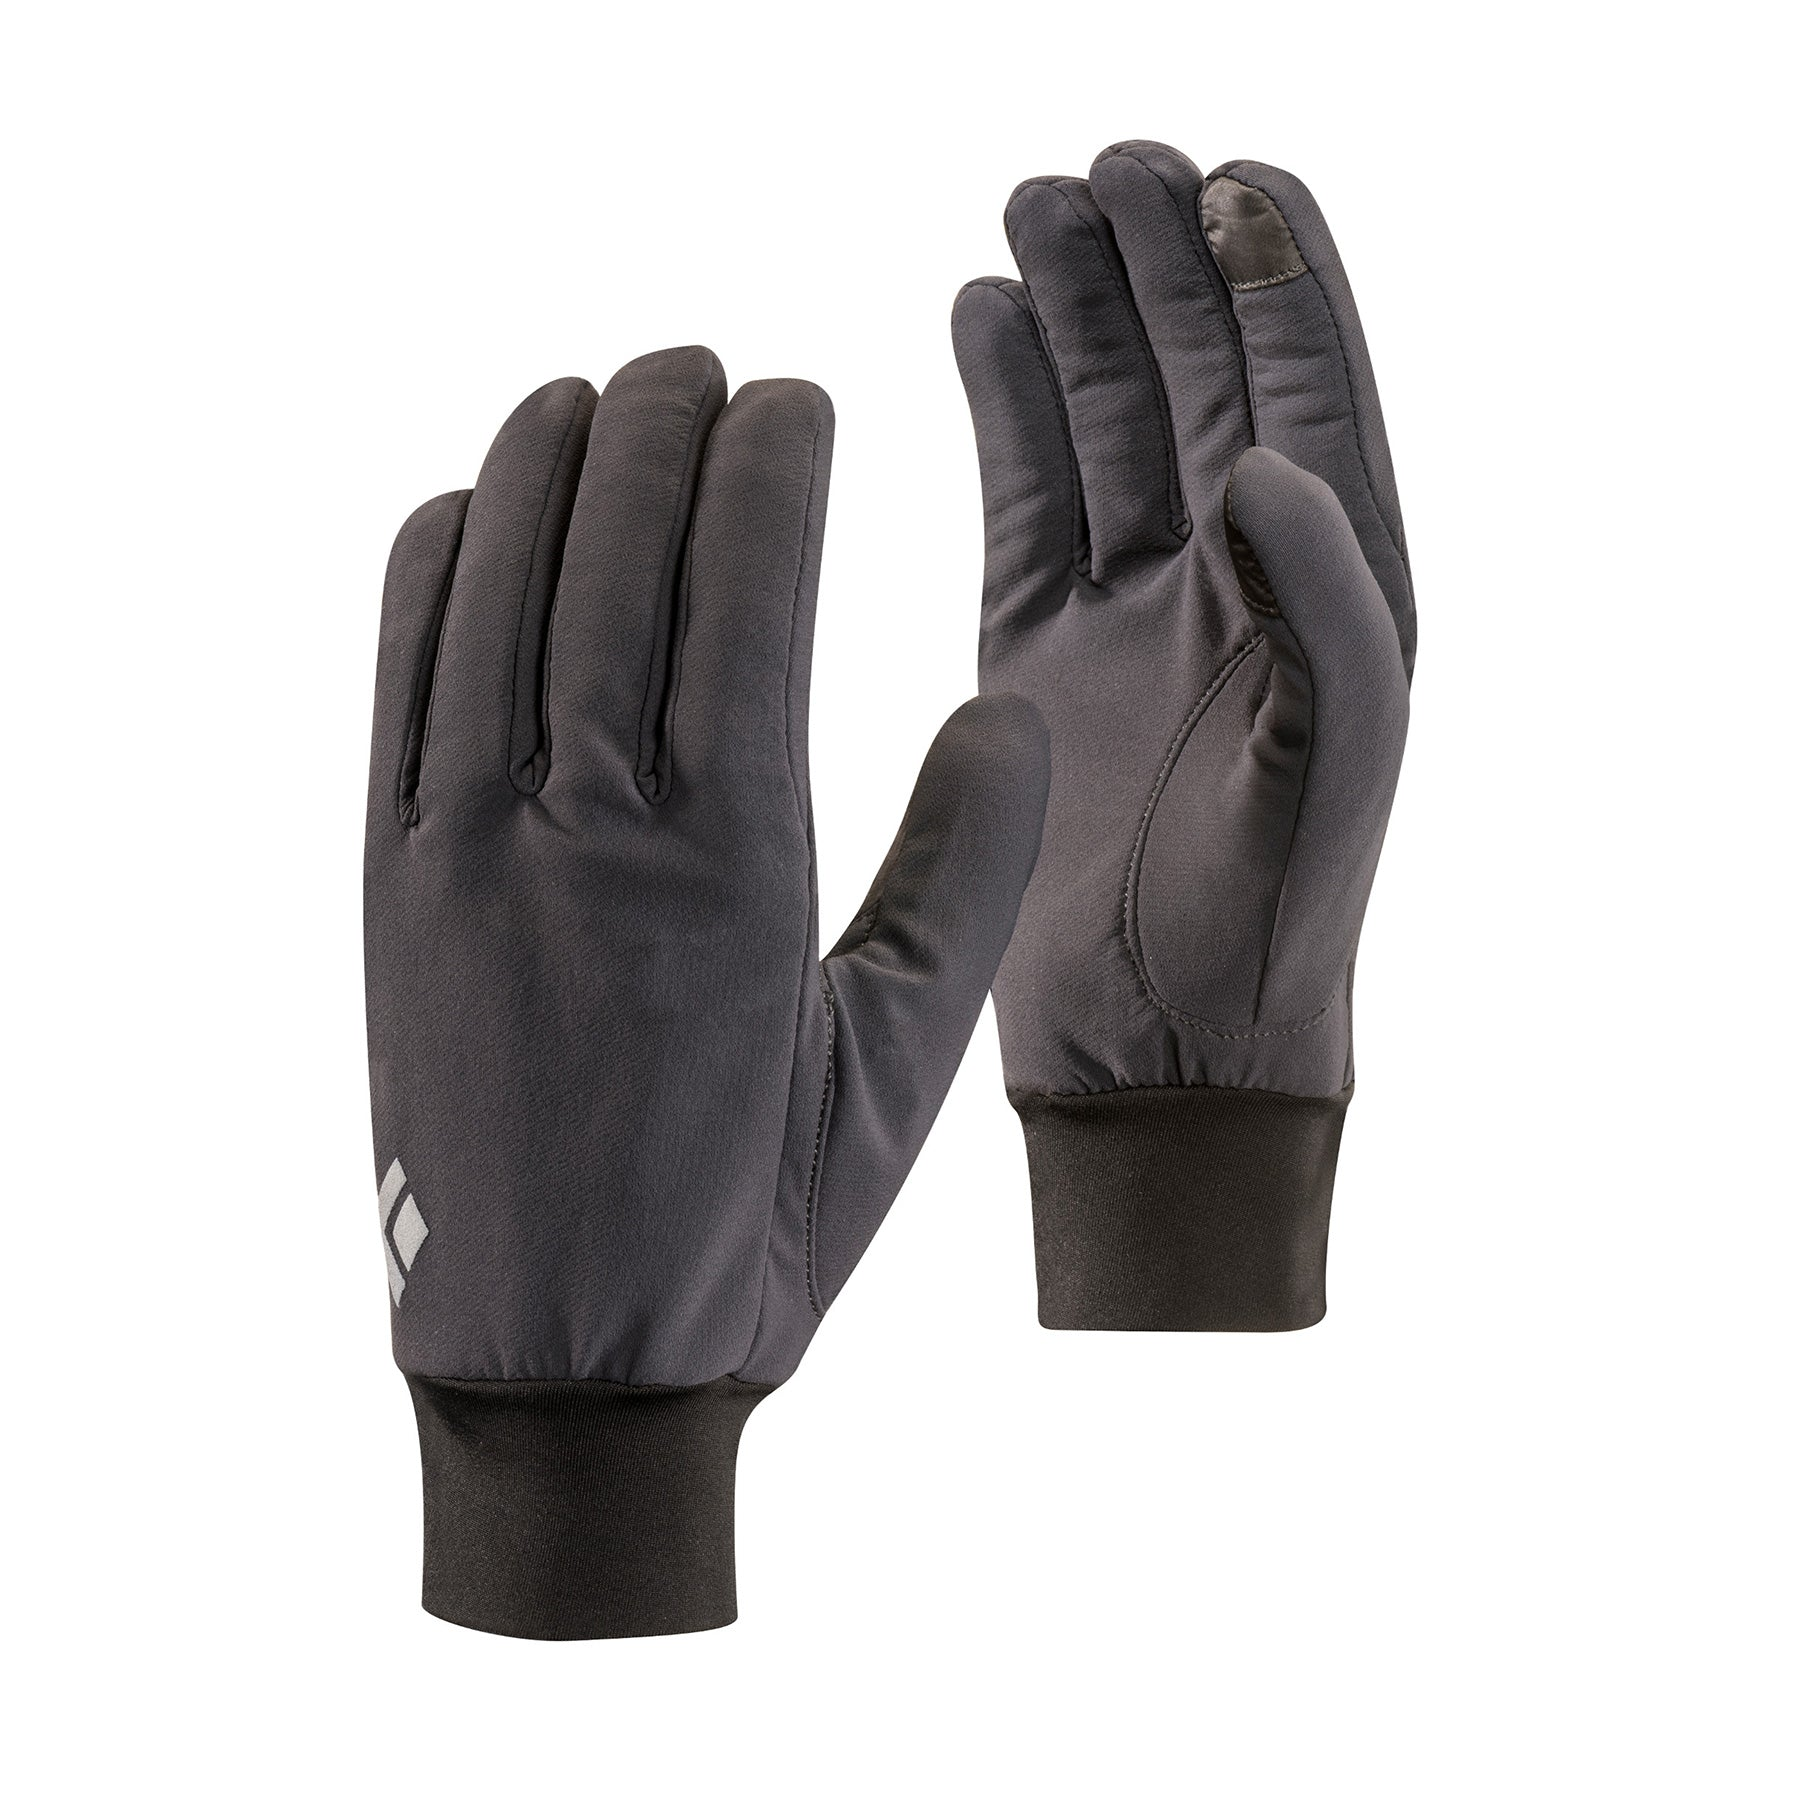 a pair of light softshell gloves